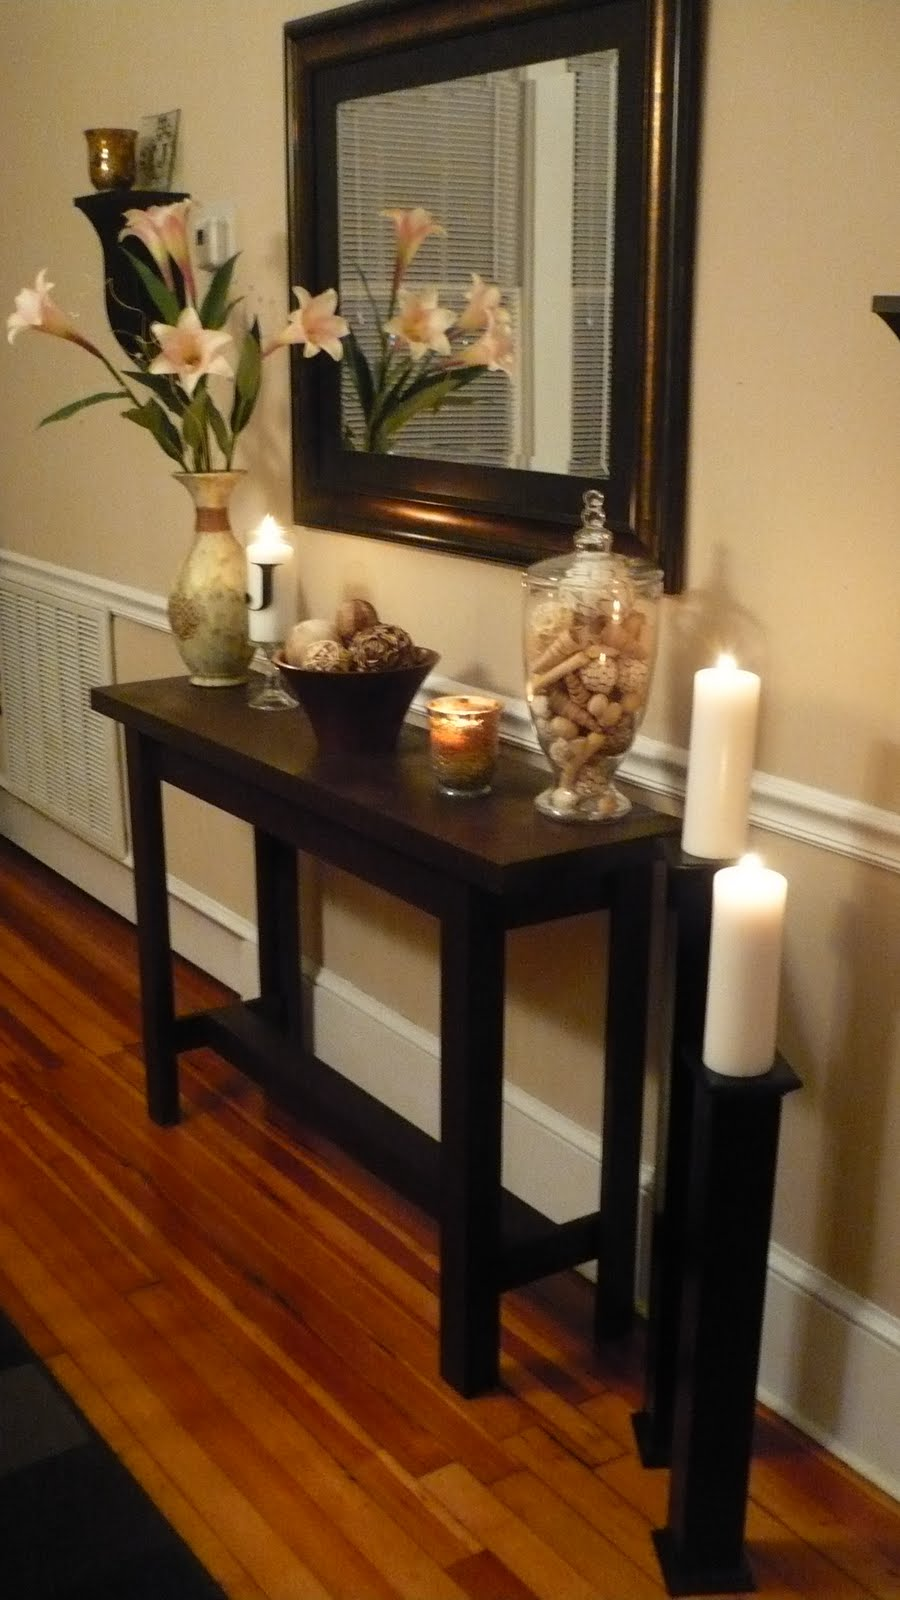 hallway table designs. DIY Console Table With Life As Lori - Somewhat Simple Hallway Designs E